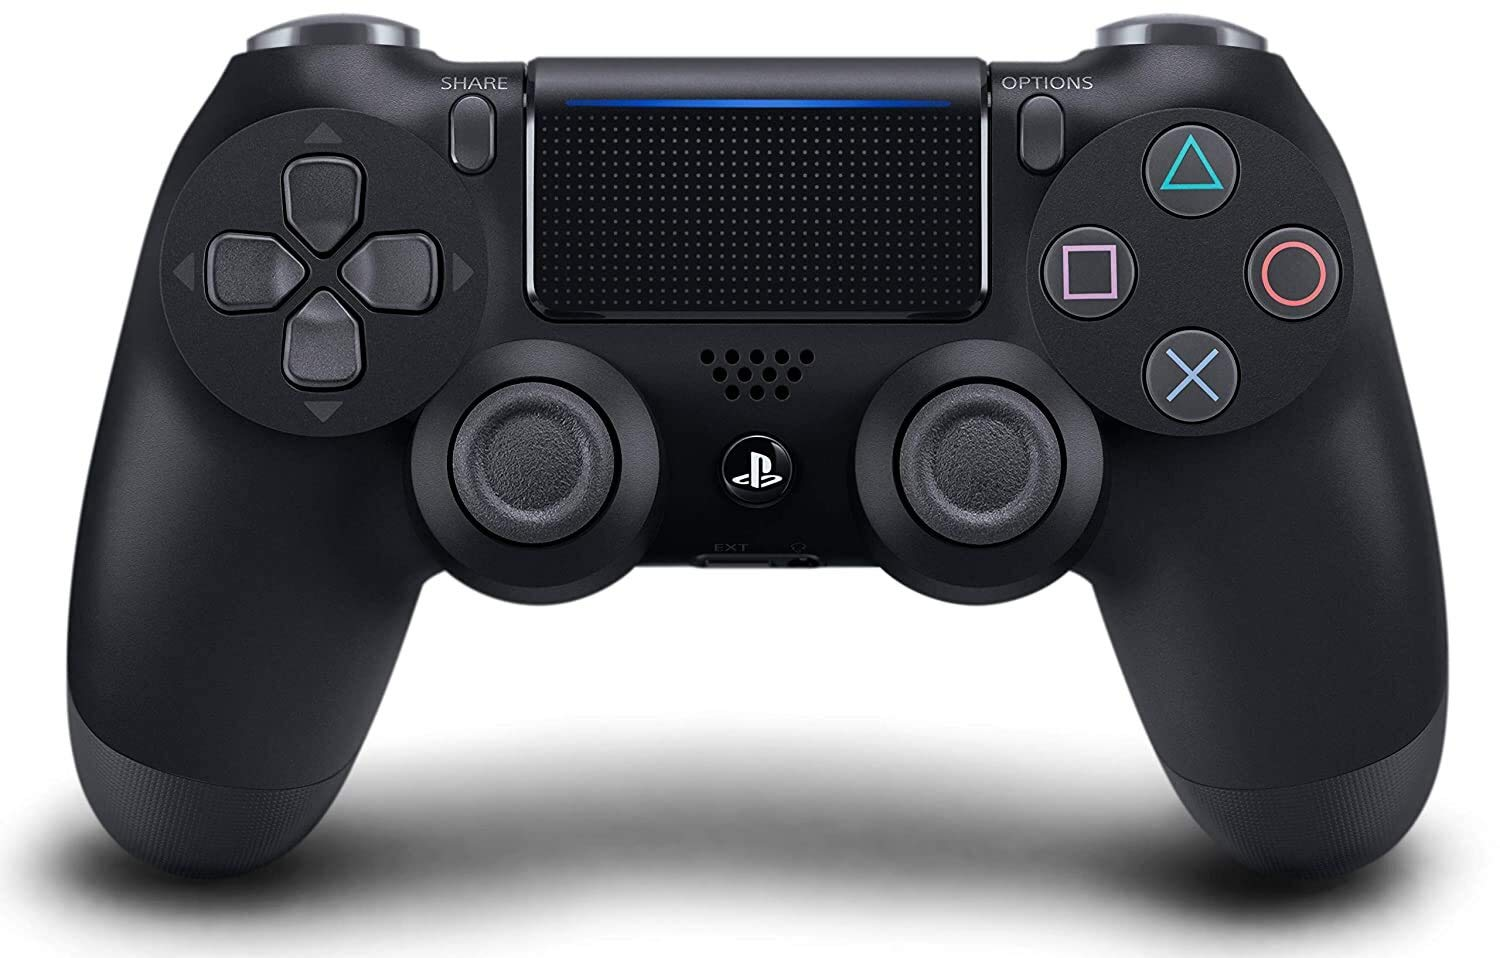 The classic PlayStation 4 DualShock 4 controller in a glossy black color.